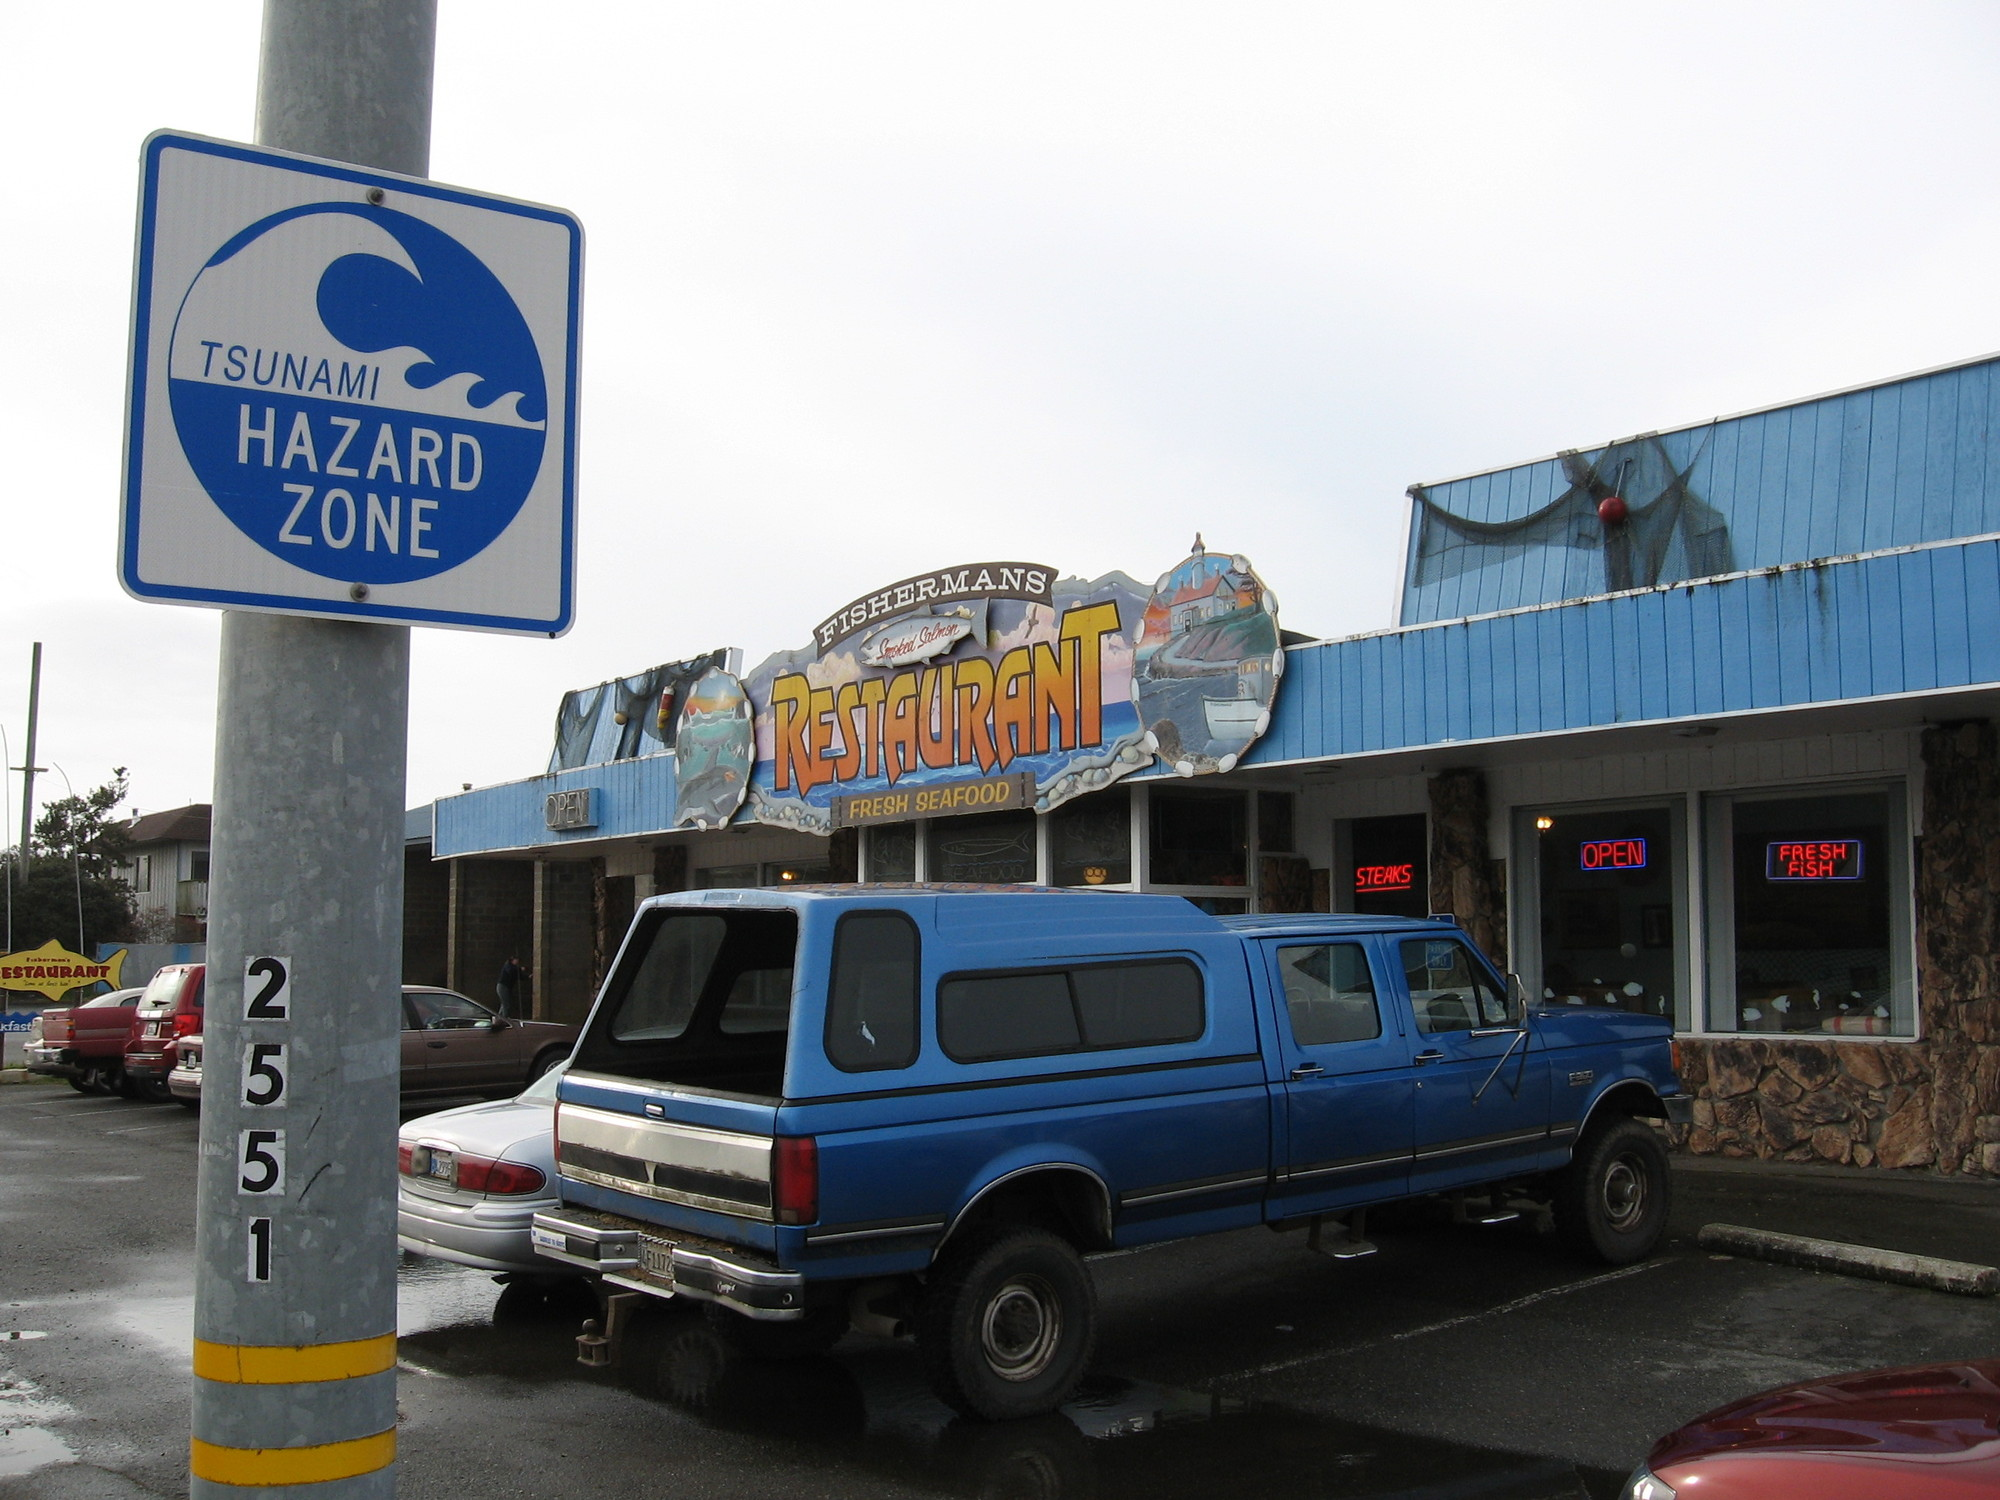 A tsunami warning sign in Crescent City, CA, which has a well-rehearsed response plan. (Craig Miller/KQED)